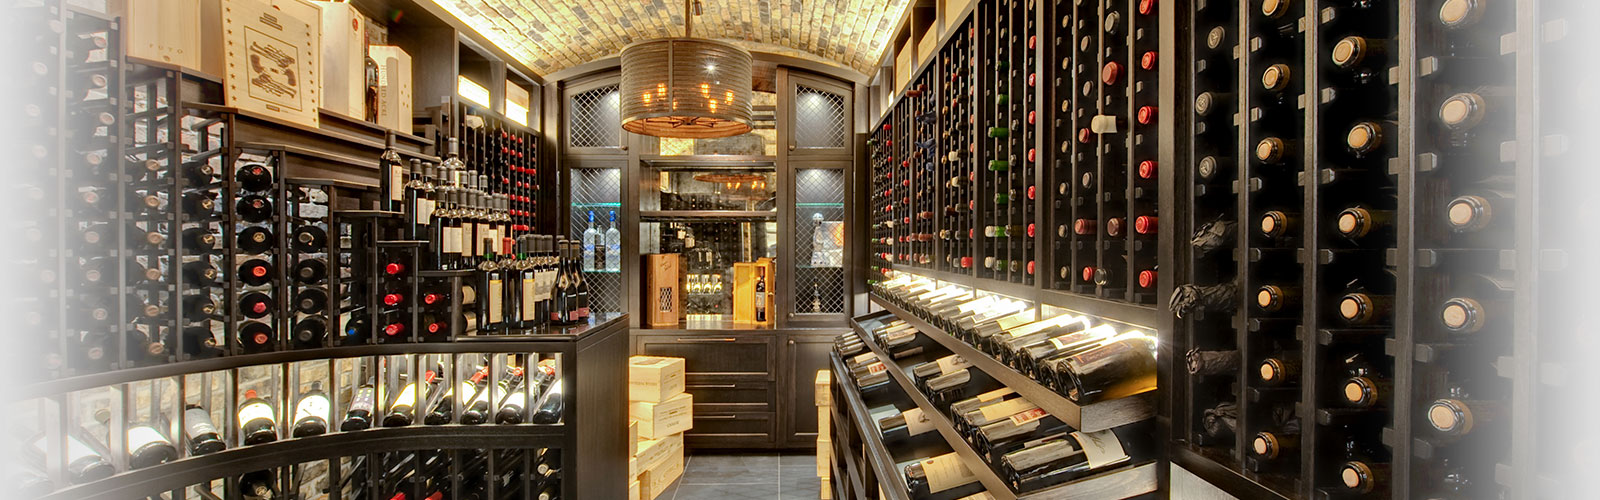 WineCellar 1, Custom Home Builder